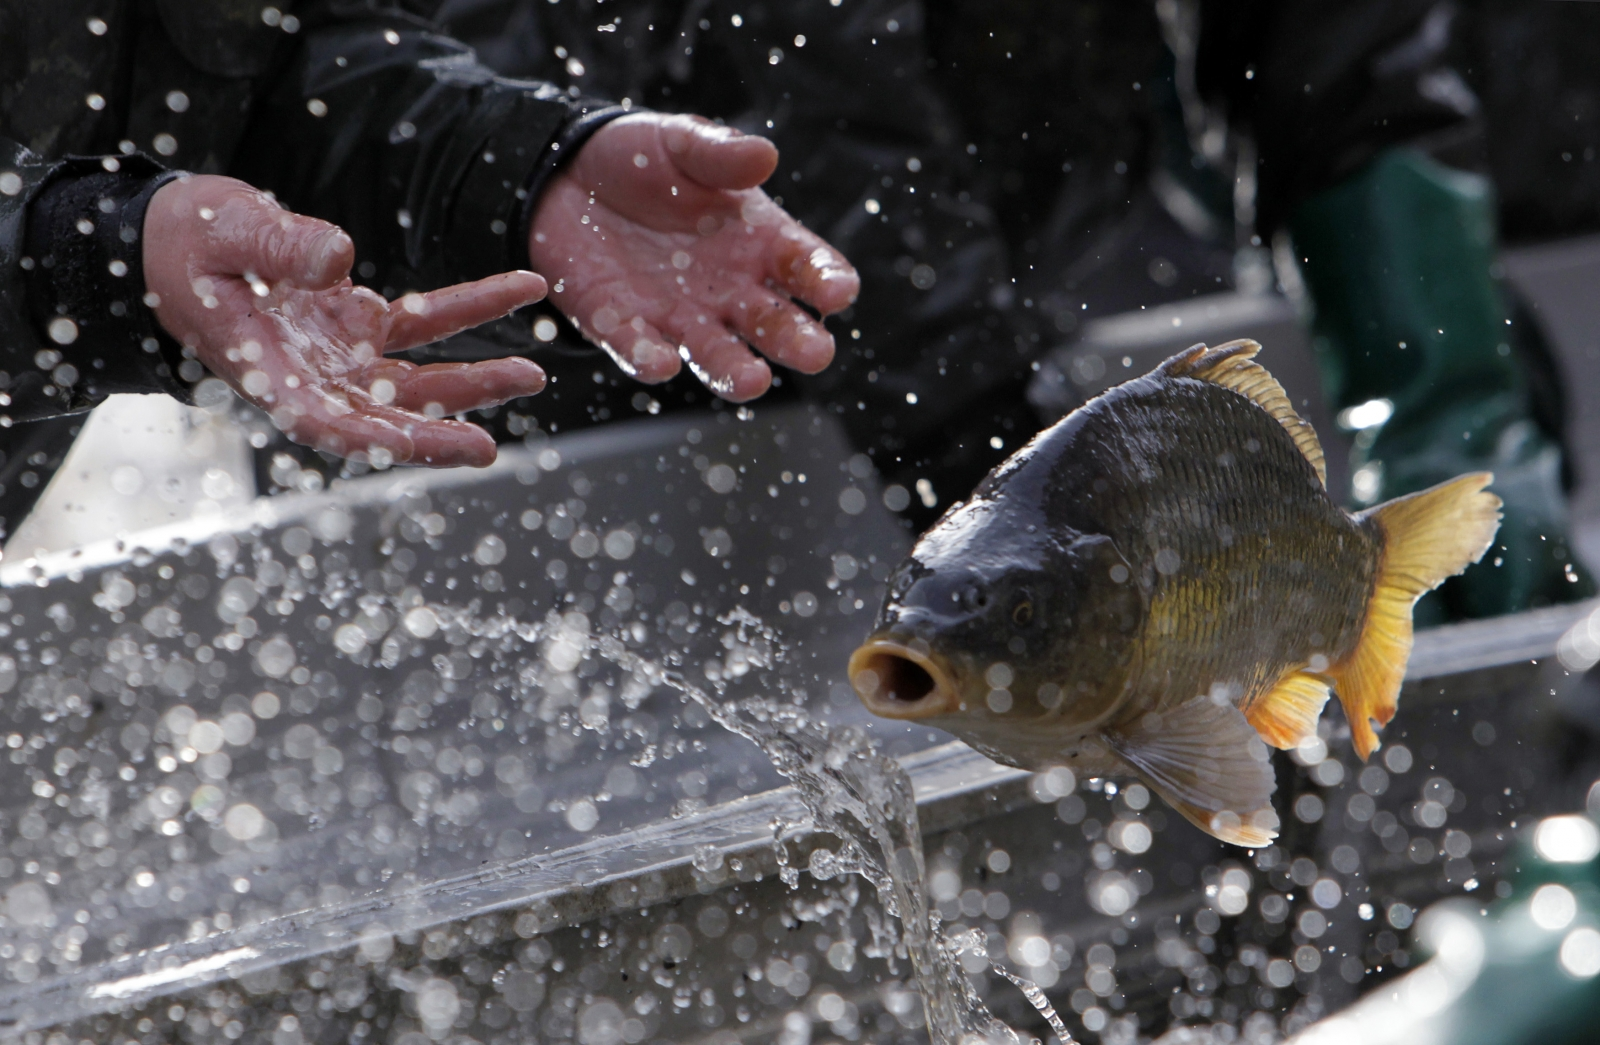 Christmas dinner fish swims in bathtub for days before for A fish in the bathtub